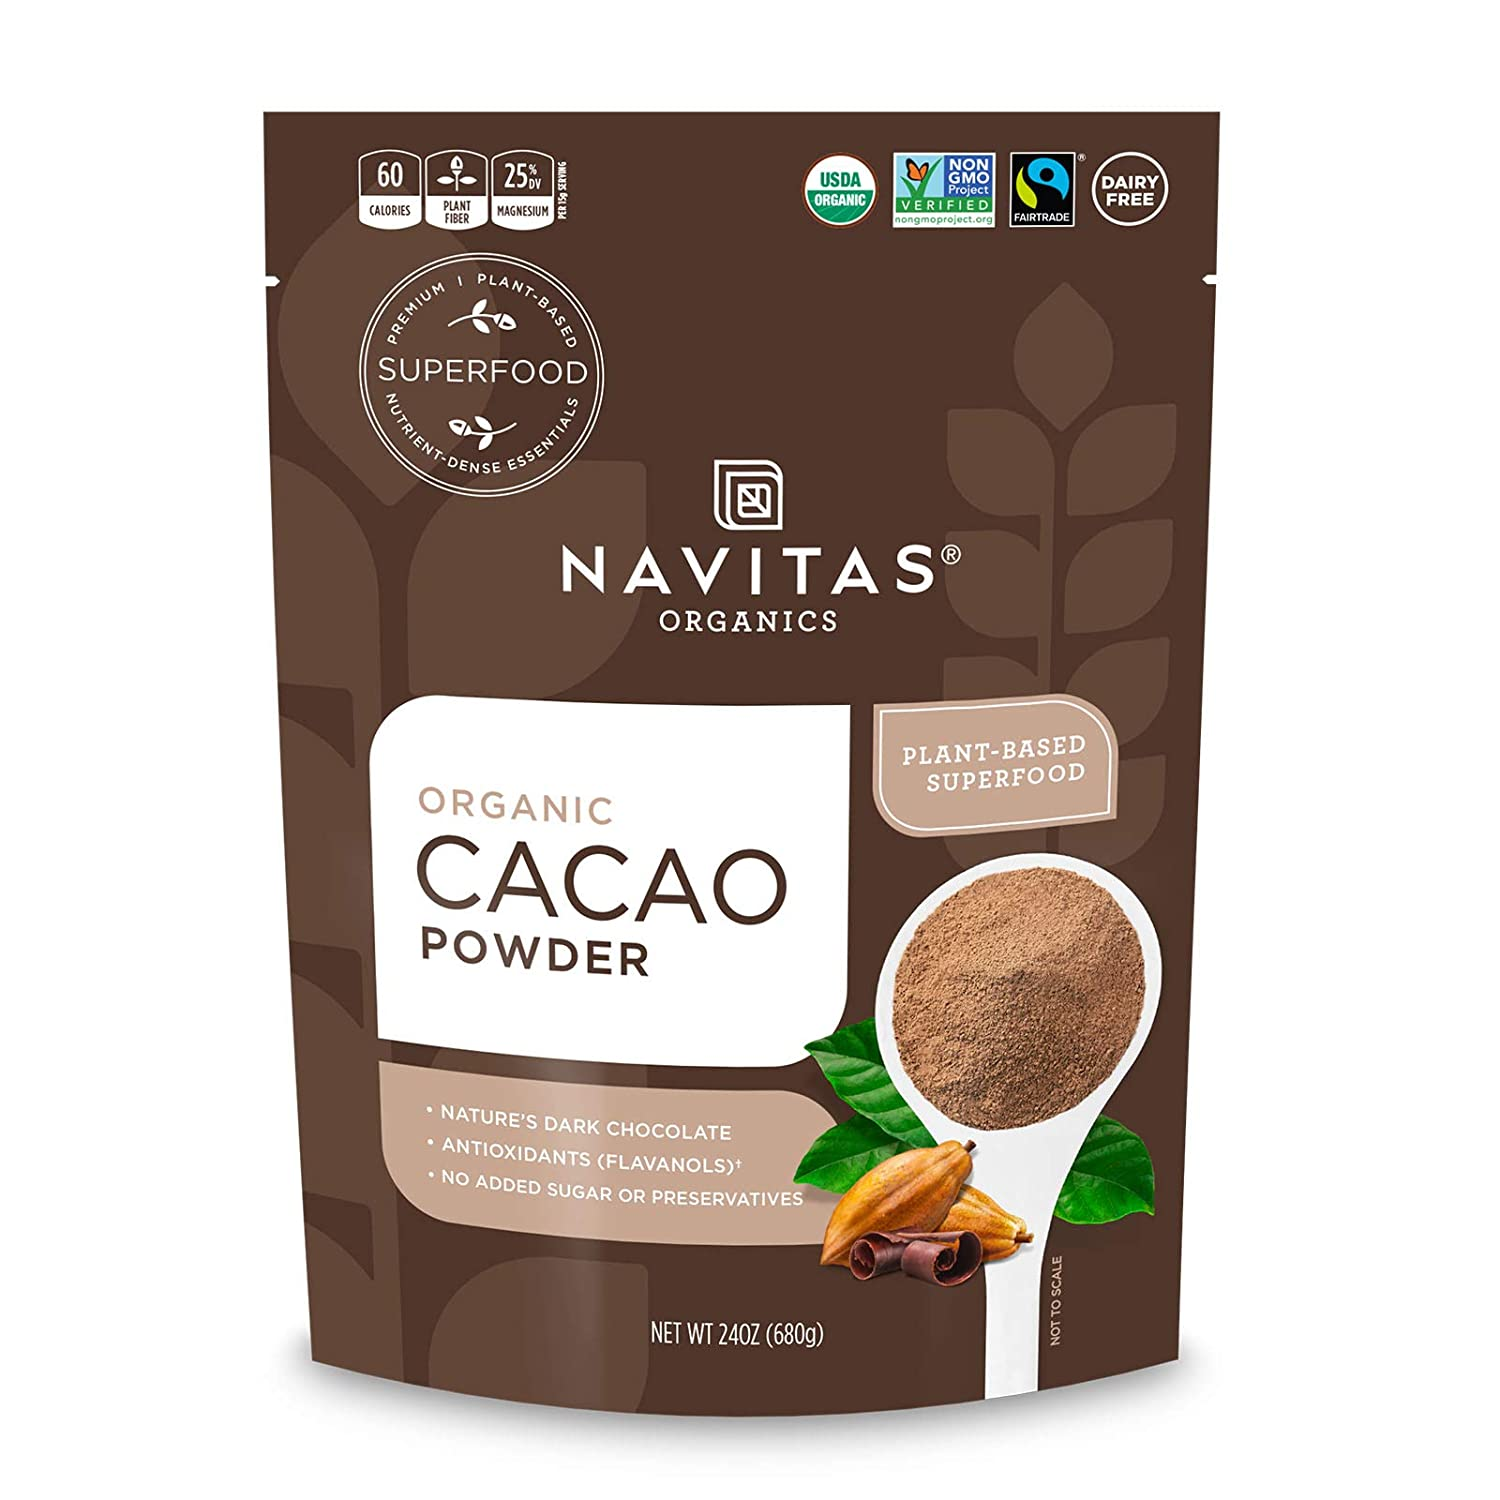 Navitas Organics Cacao: Amazon.com: Grocery & Gourmet Food